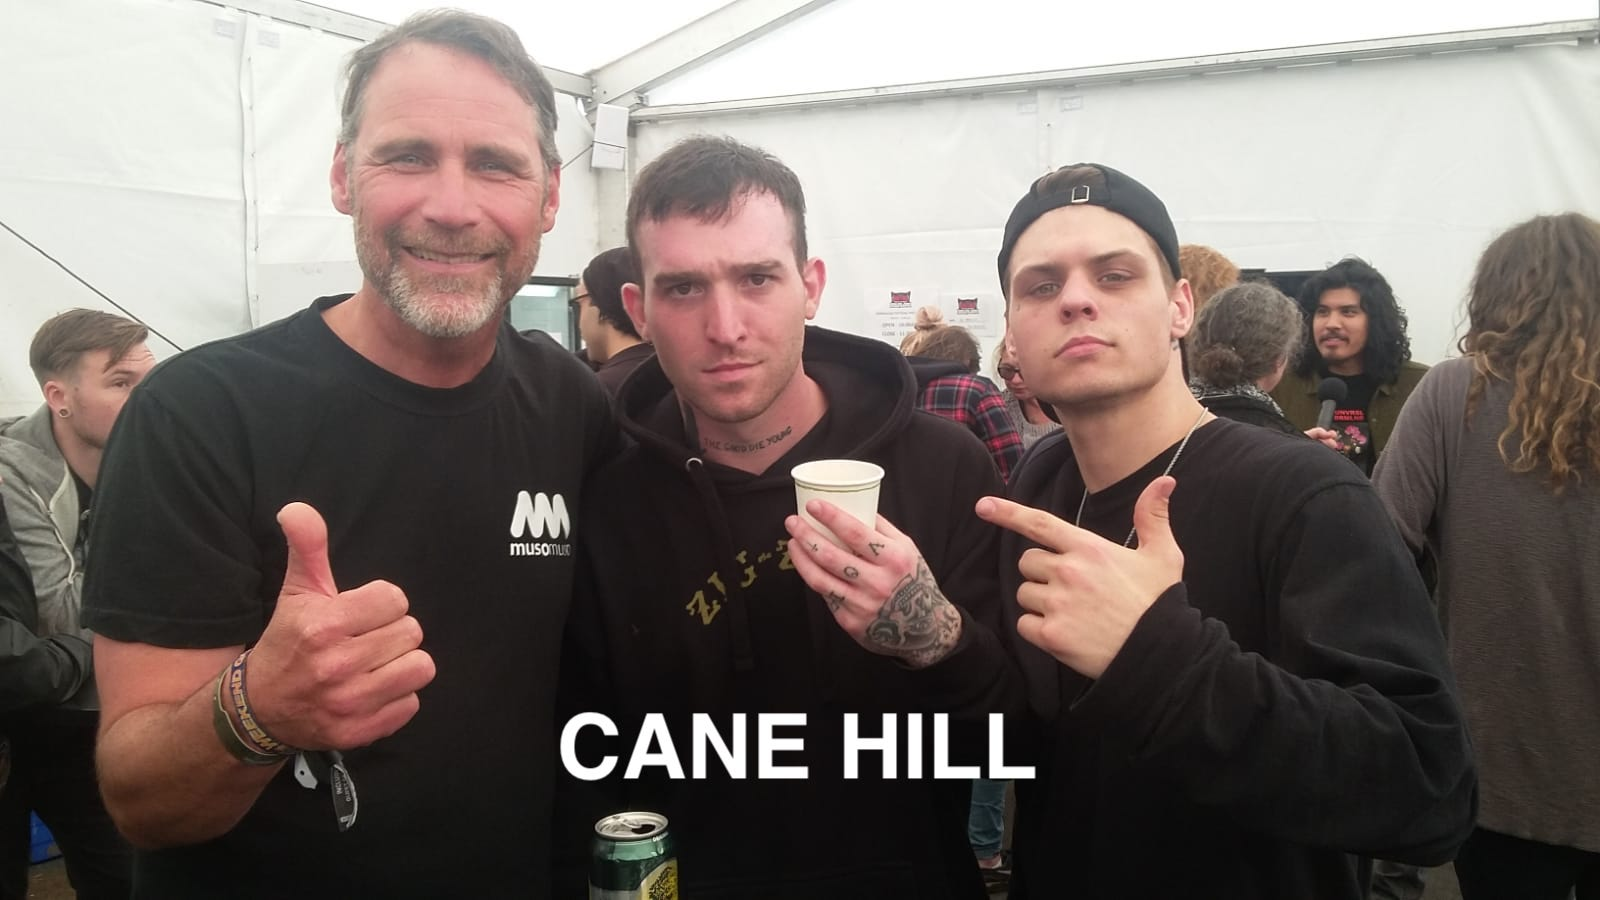 We caught up with loads of bands at DOWNLOAD FESTIVAL this